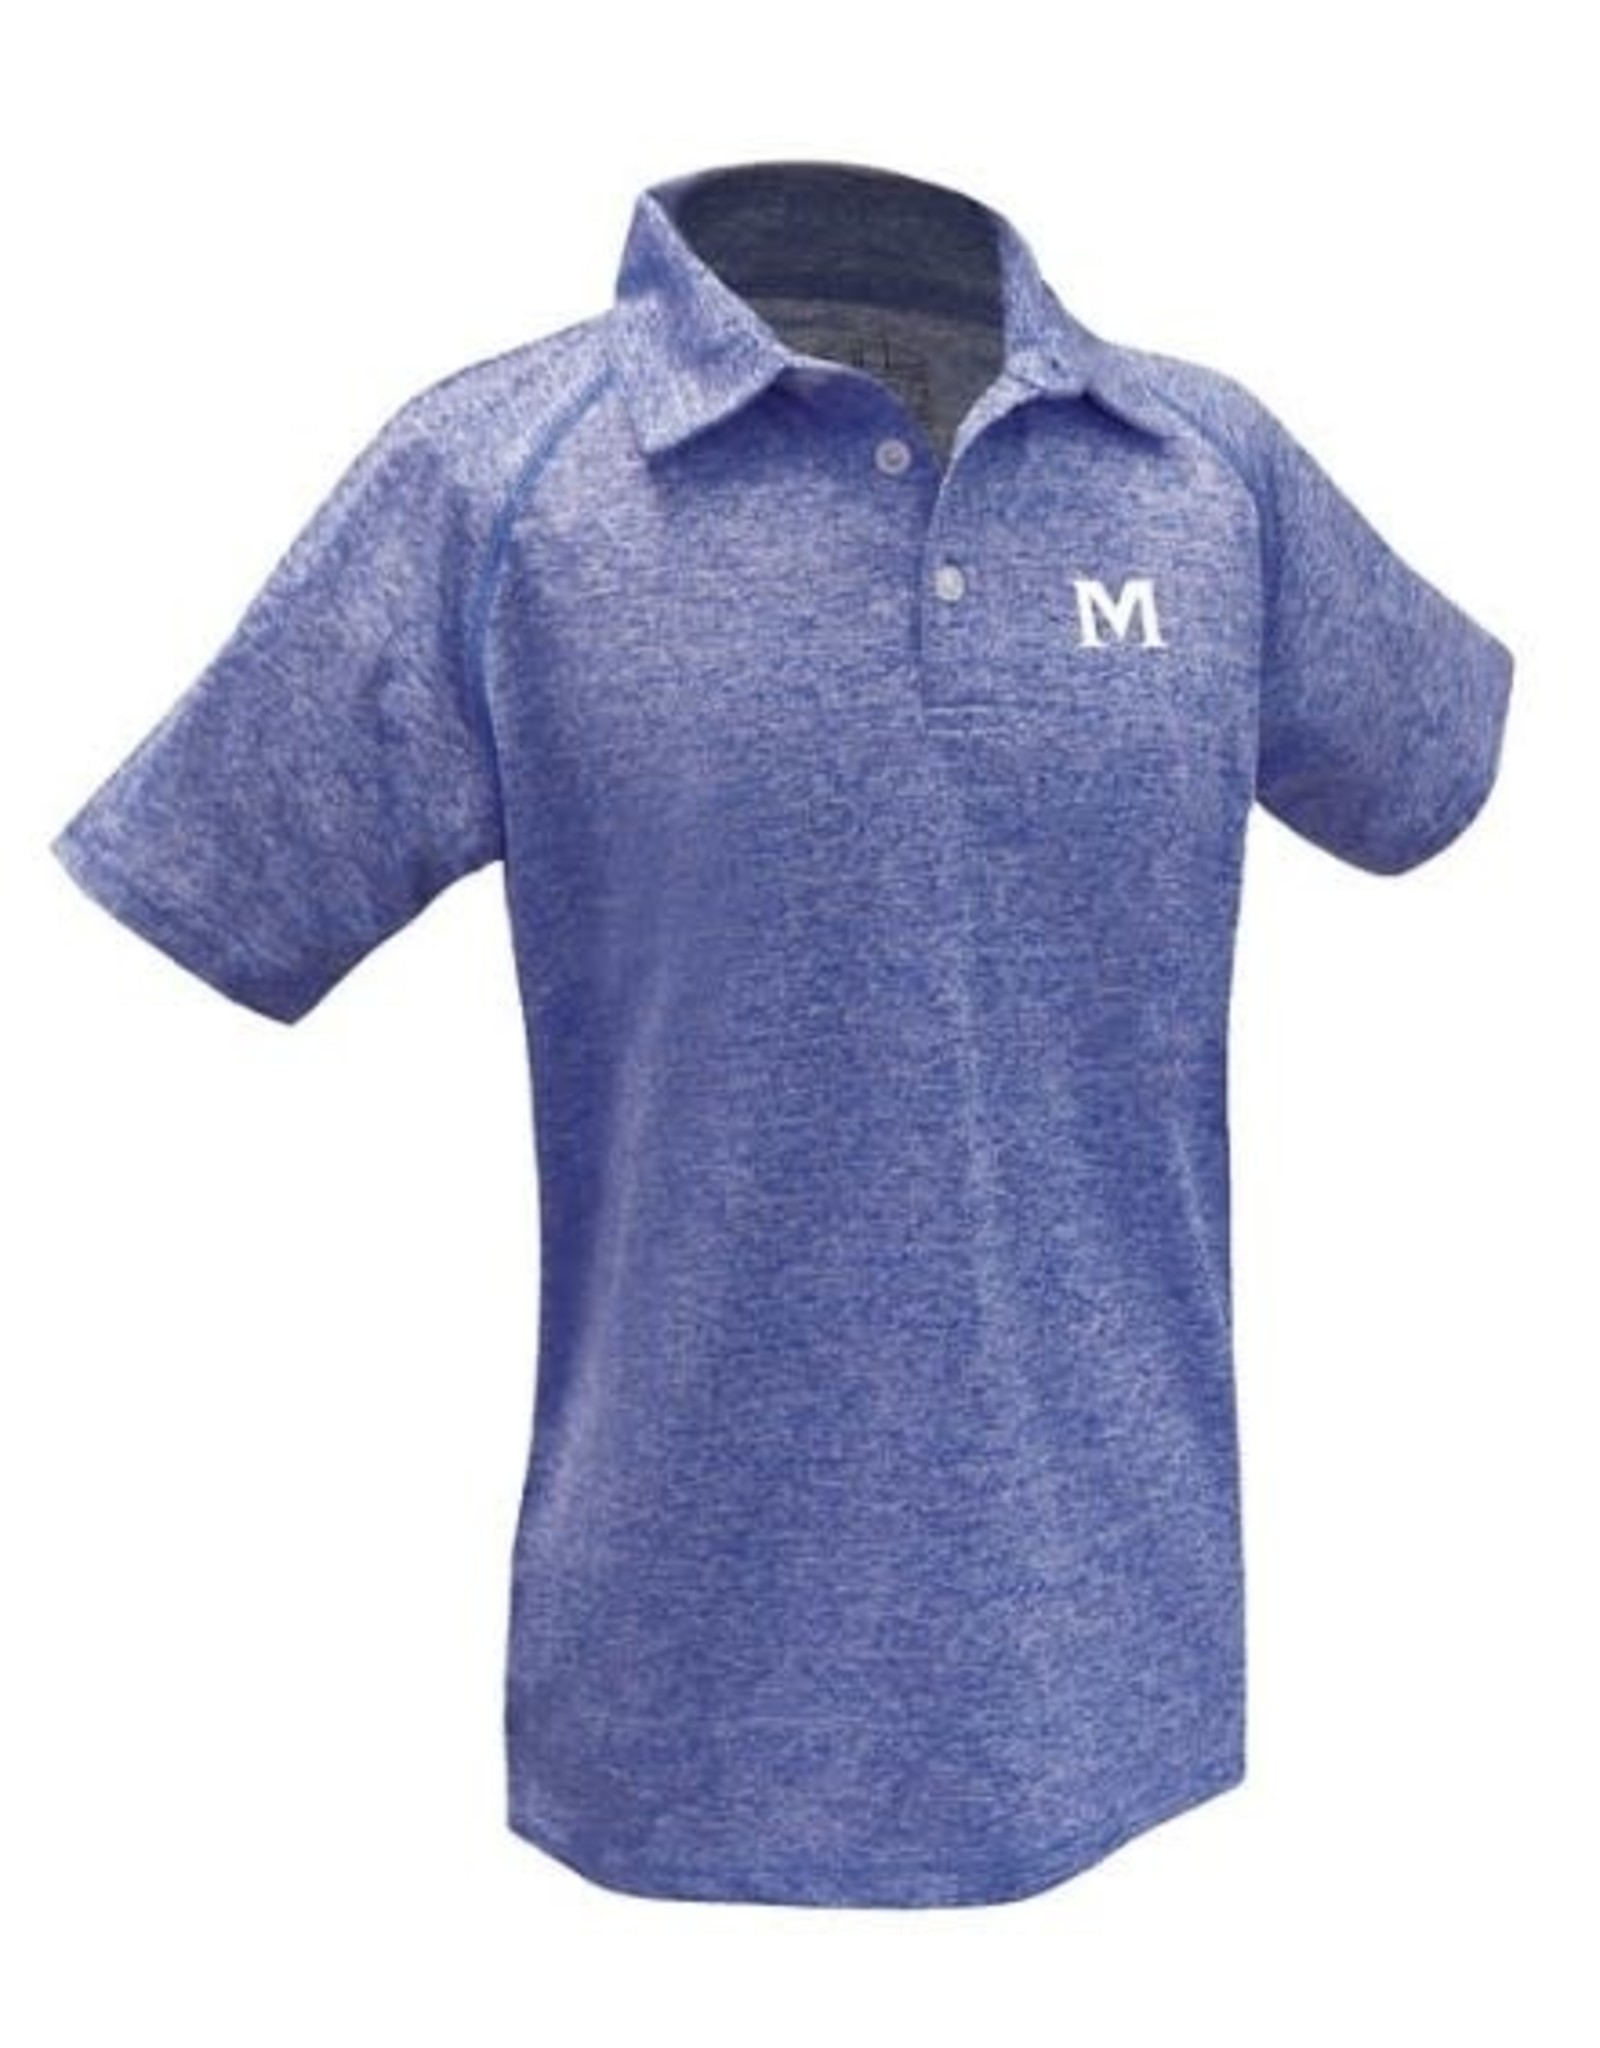 YOUTH BLUE MARLED POLO